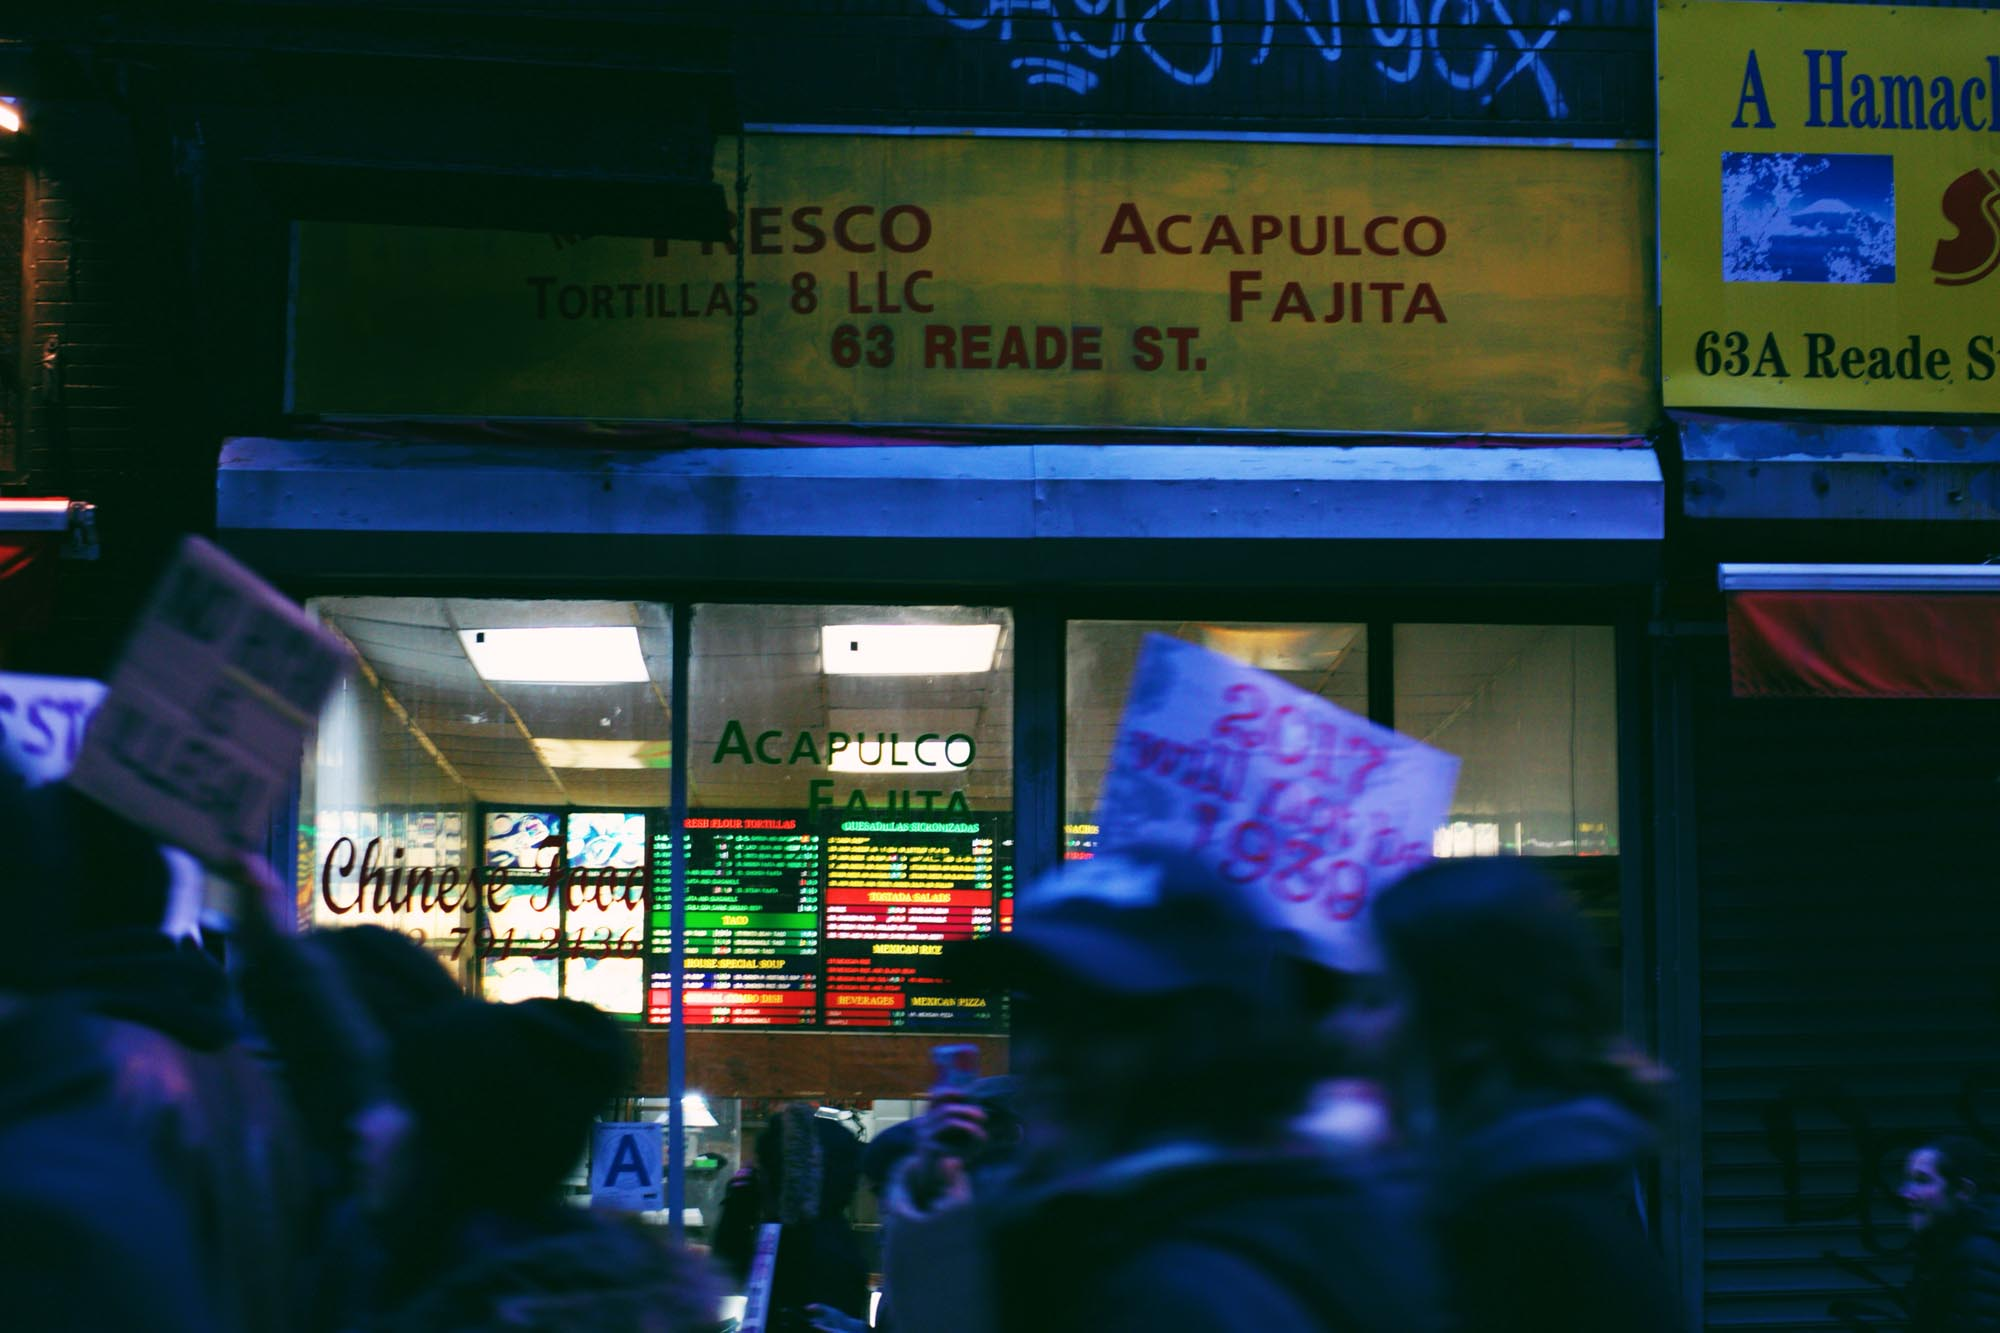 On my way home from the march, I took a detour through Chinatown. I came across a takeout place that served both Mexican and Chinese food, and thought, how American…